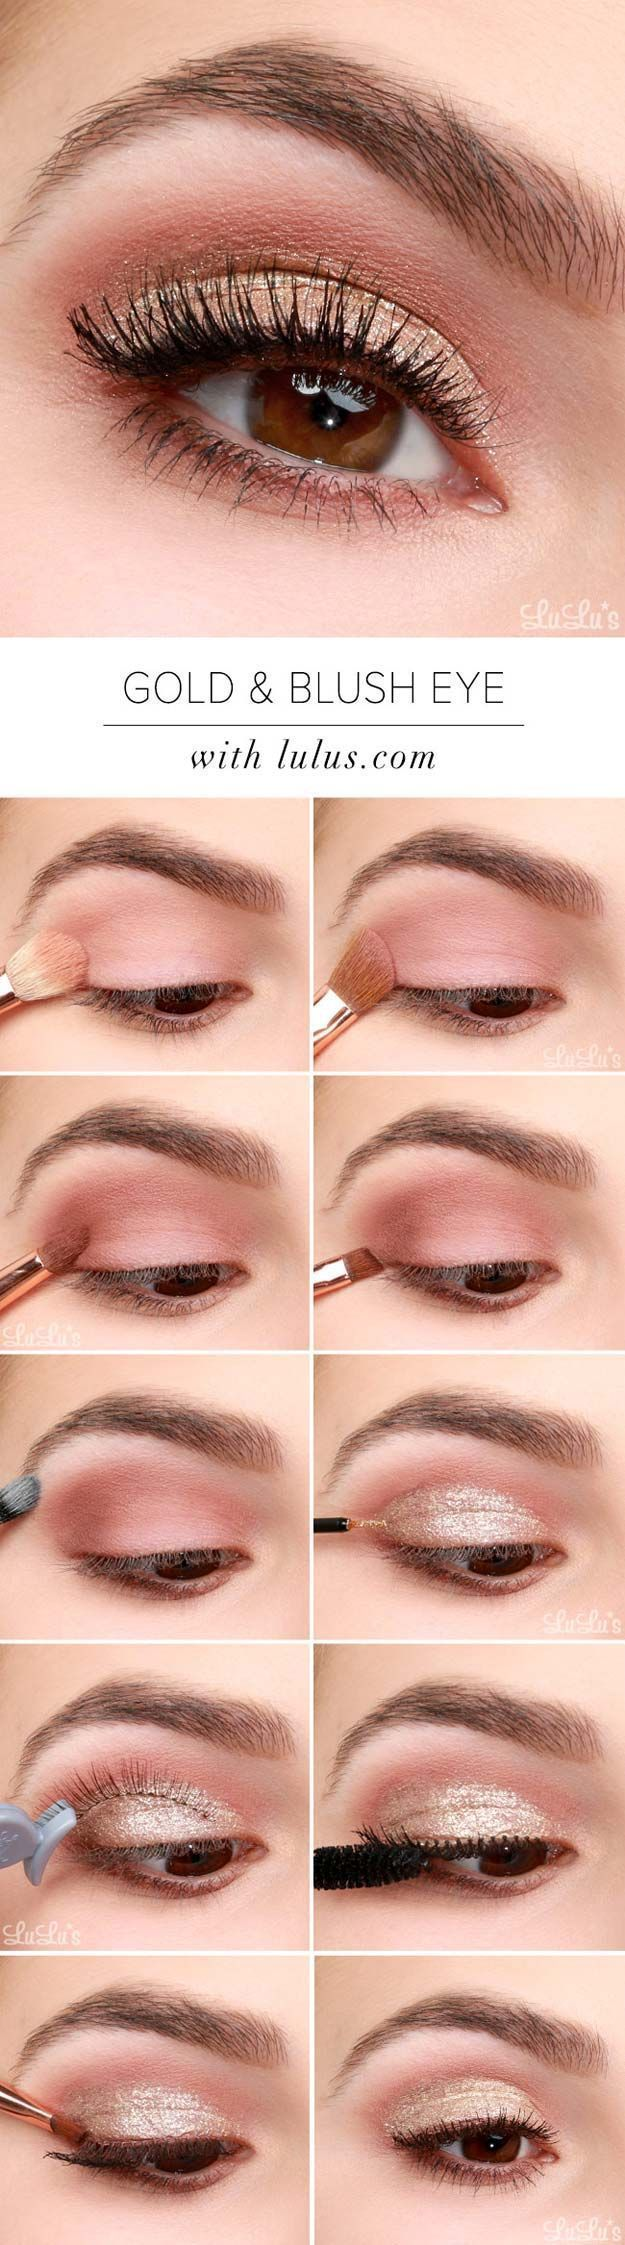 Makeup Tips For Looking Your Best In Photos - Lulus How-To: Gold and Blush Valentine's Day Eye Makeup Tutorial - Make Up Tips And Tricks Including Eyeshadows, Brows, Eyes, Products And Eyebrows Ideas That Will Help You Look Amazing In Photos. Covers Different Hair Colors For Photos And Different Faces, Lipsticks, Including Red Lips, And Lashes And Eyeliner For That Natural Look In Photos. Simple Step By Step Makeup Tutorials For Photography And Beauty Hacks and Ideas To Look Your Best In